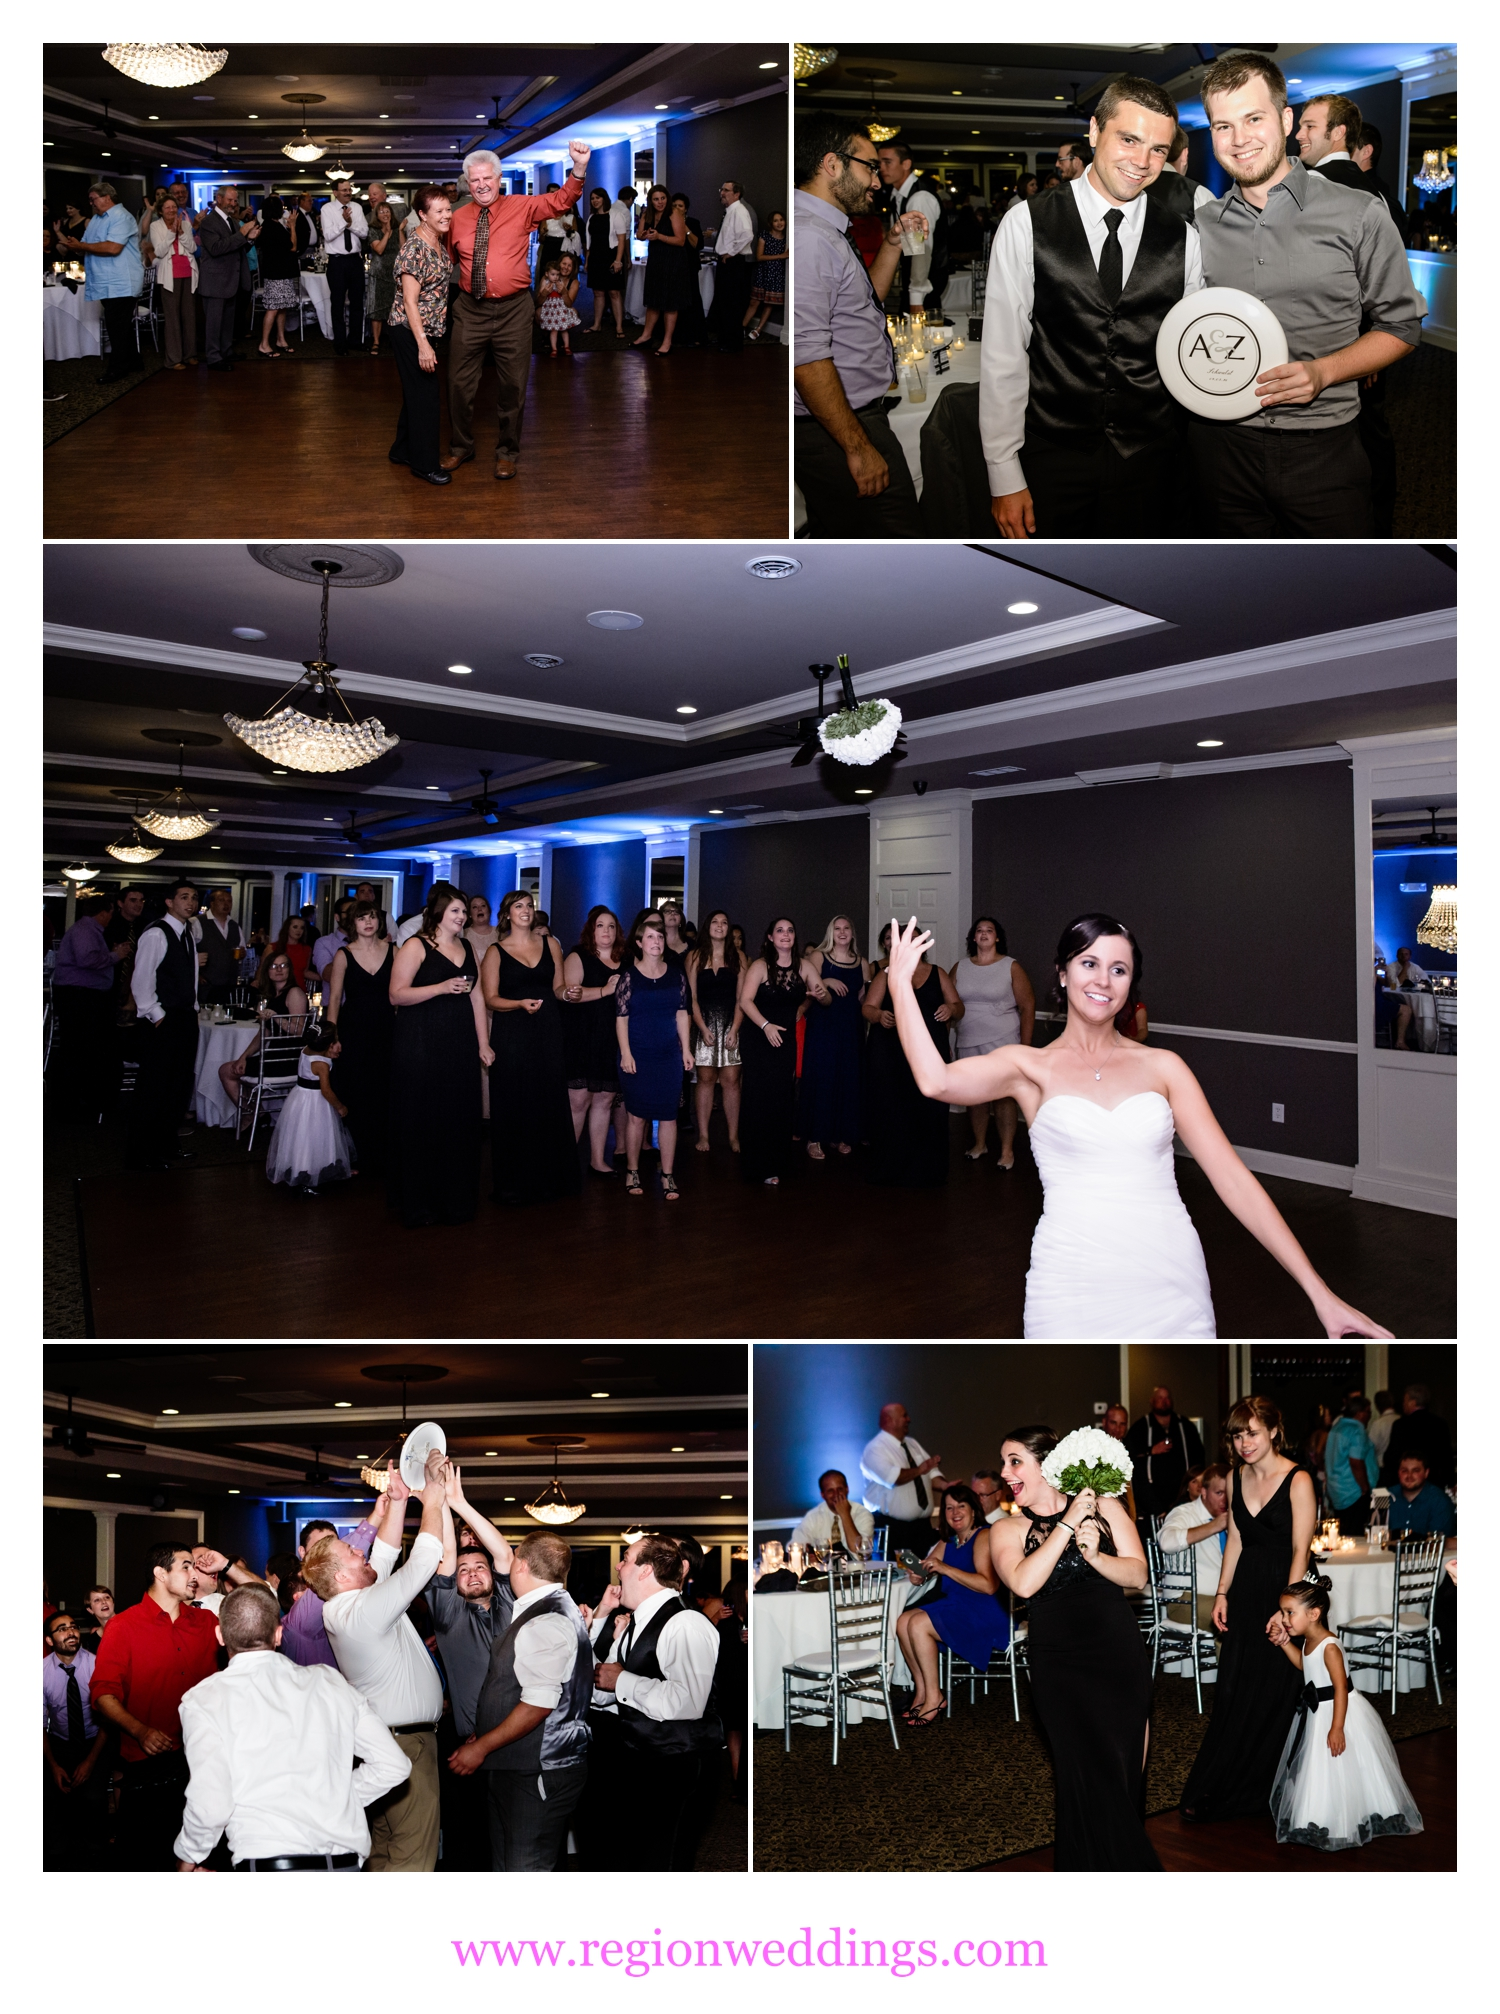 Bouquet and garter toss and the longest married couple dance.